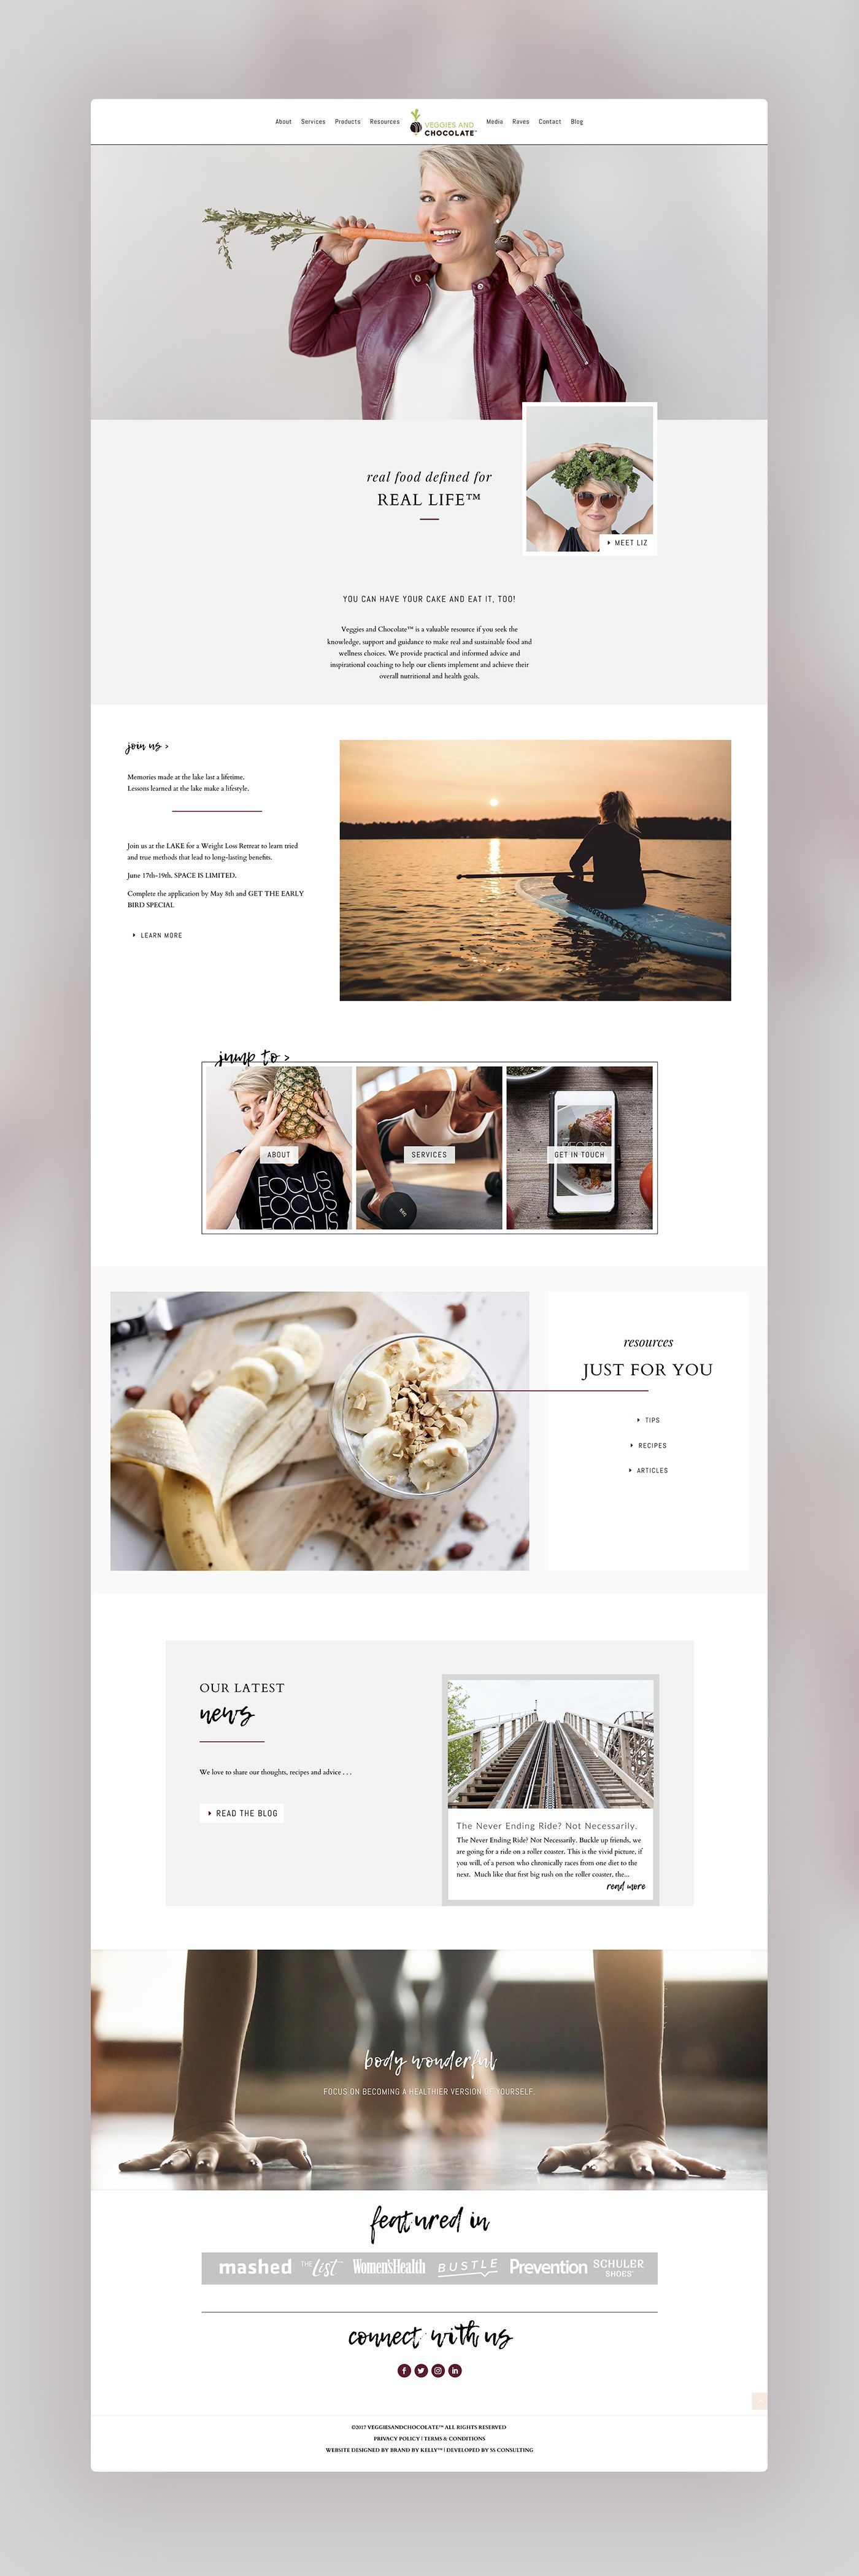 4 Tips On How To Design Your Website Layout Web Design Tips Simple Web Design Website Design Inspiration Web Design Tips